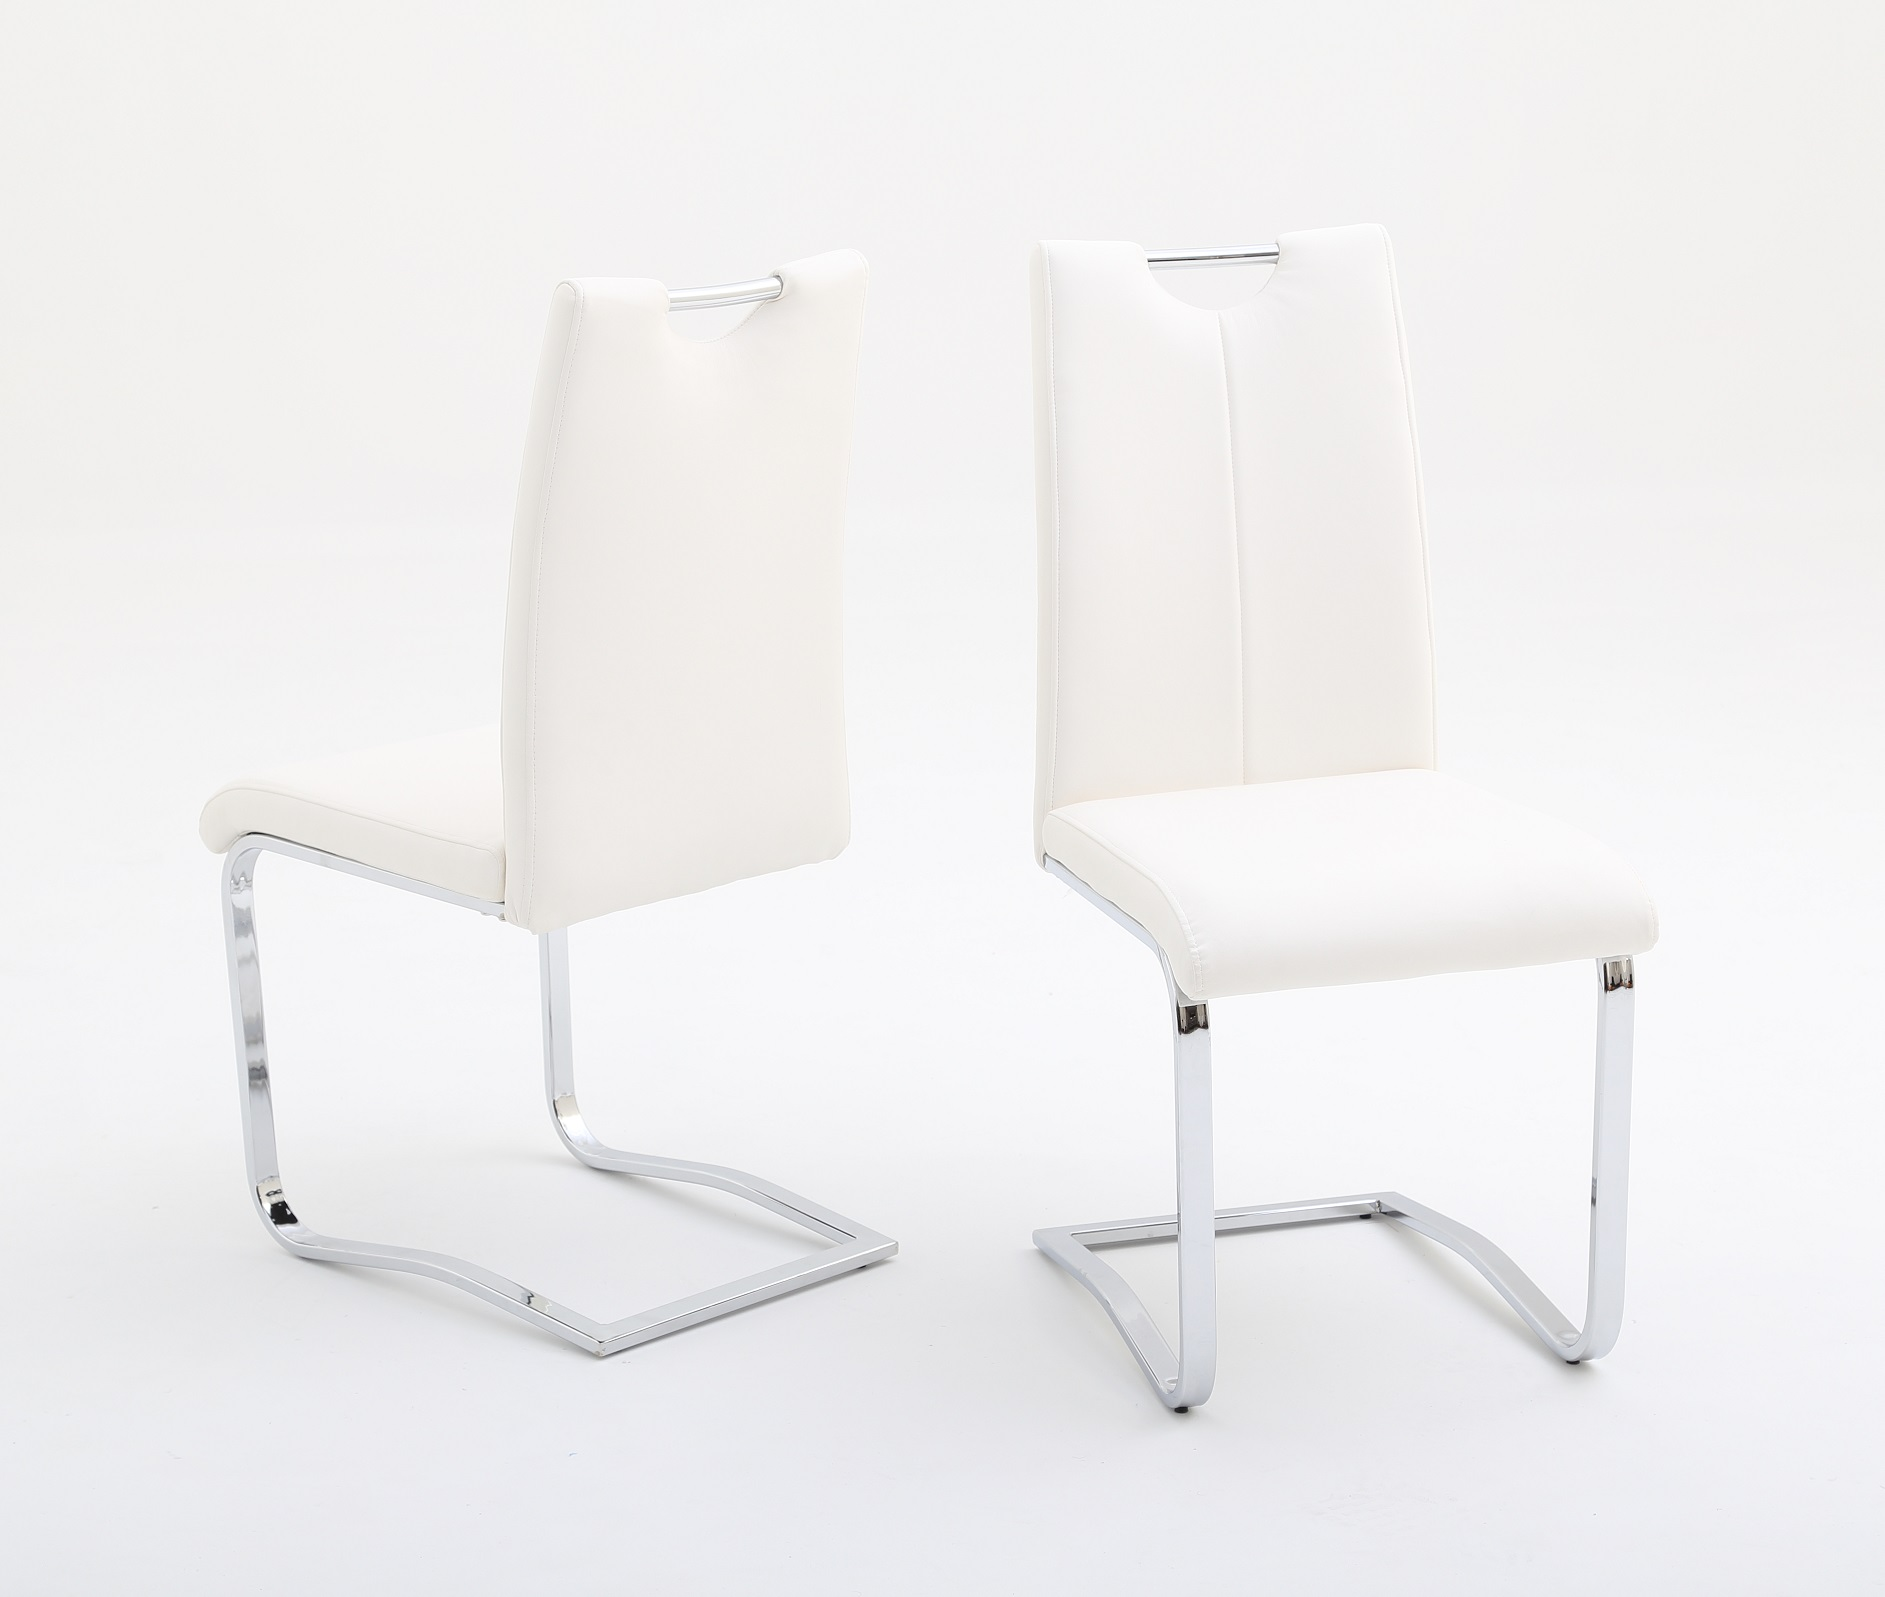 https://www.firstfurniture.co.uk/pub/media/catalog/product/g/a/gabi_chair_white.jpg